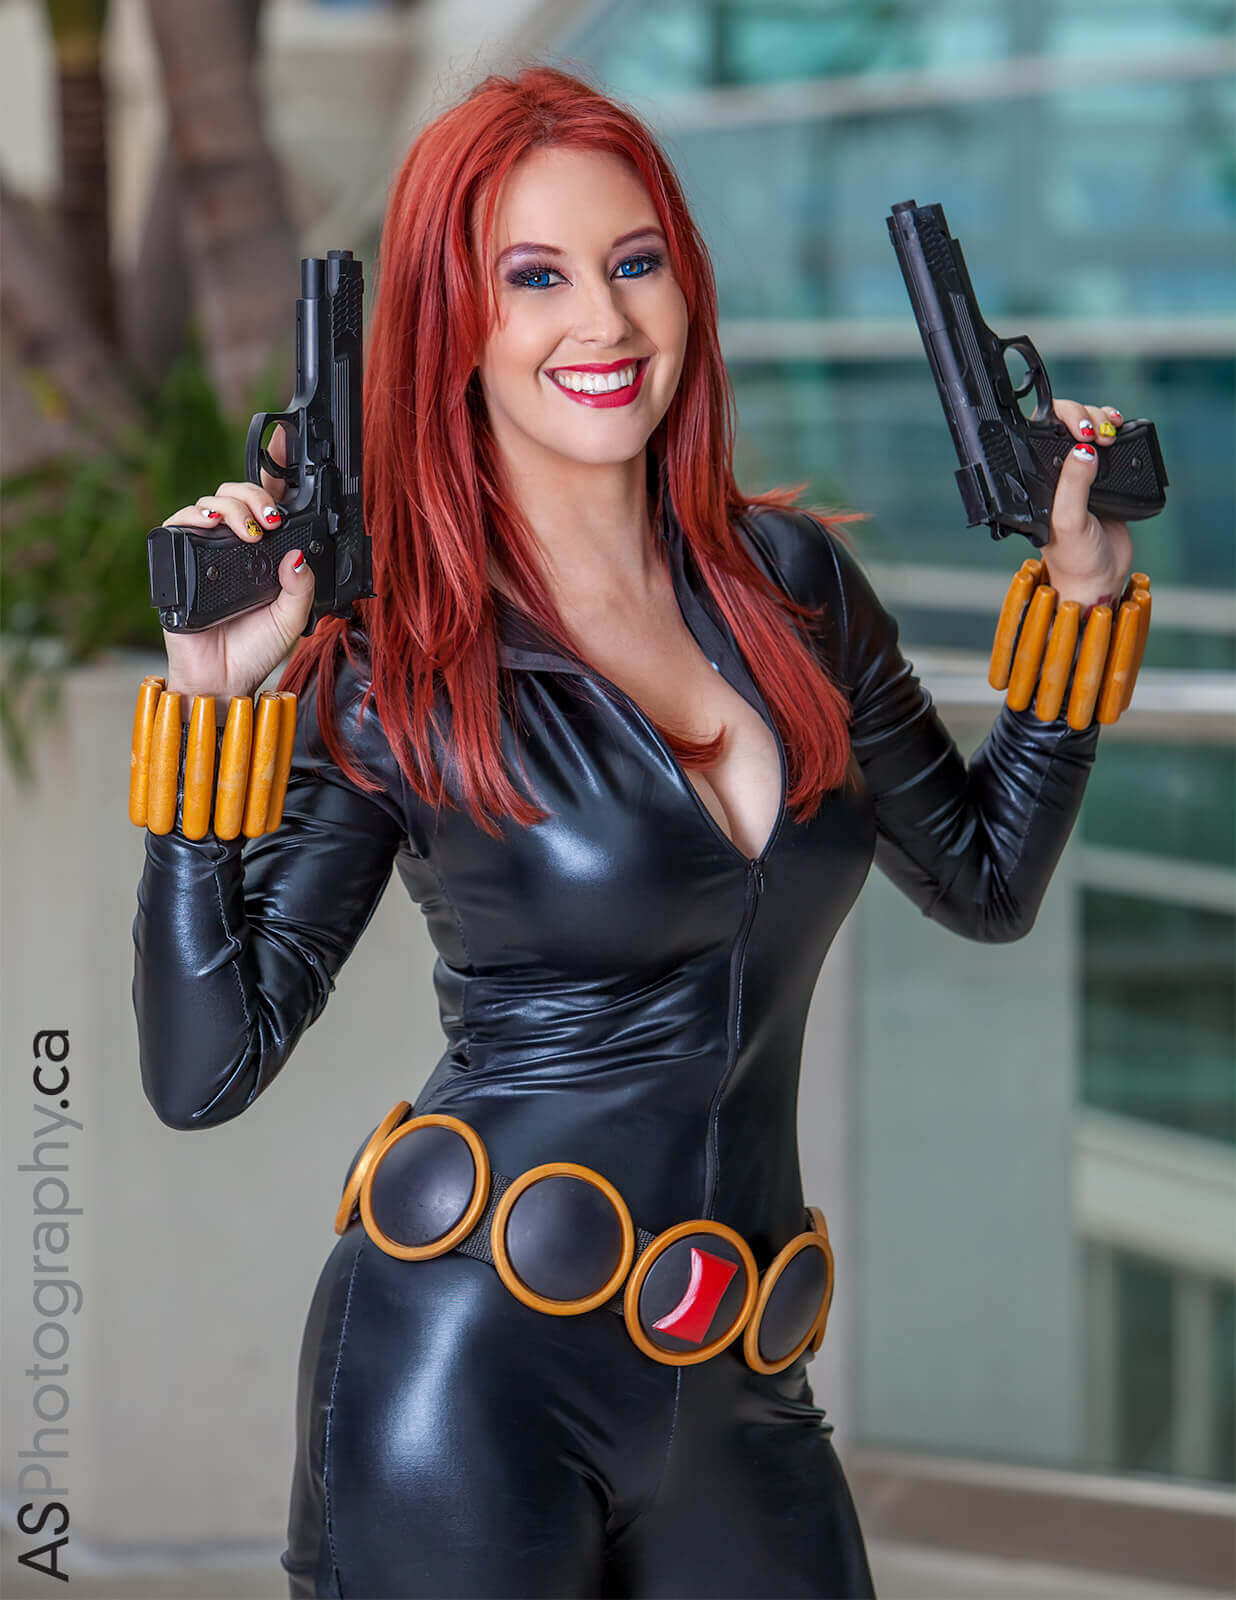 Black Widow smile pic